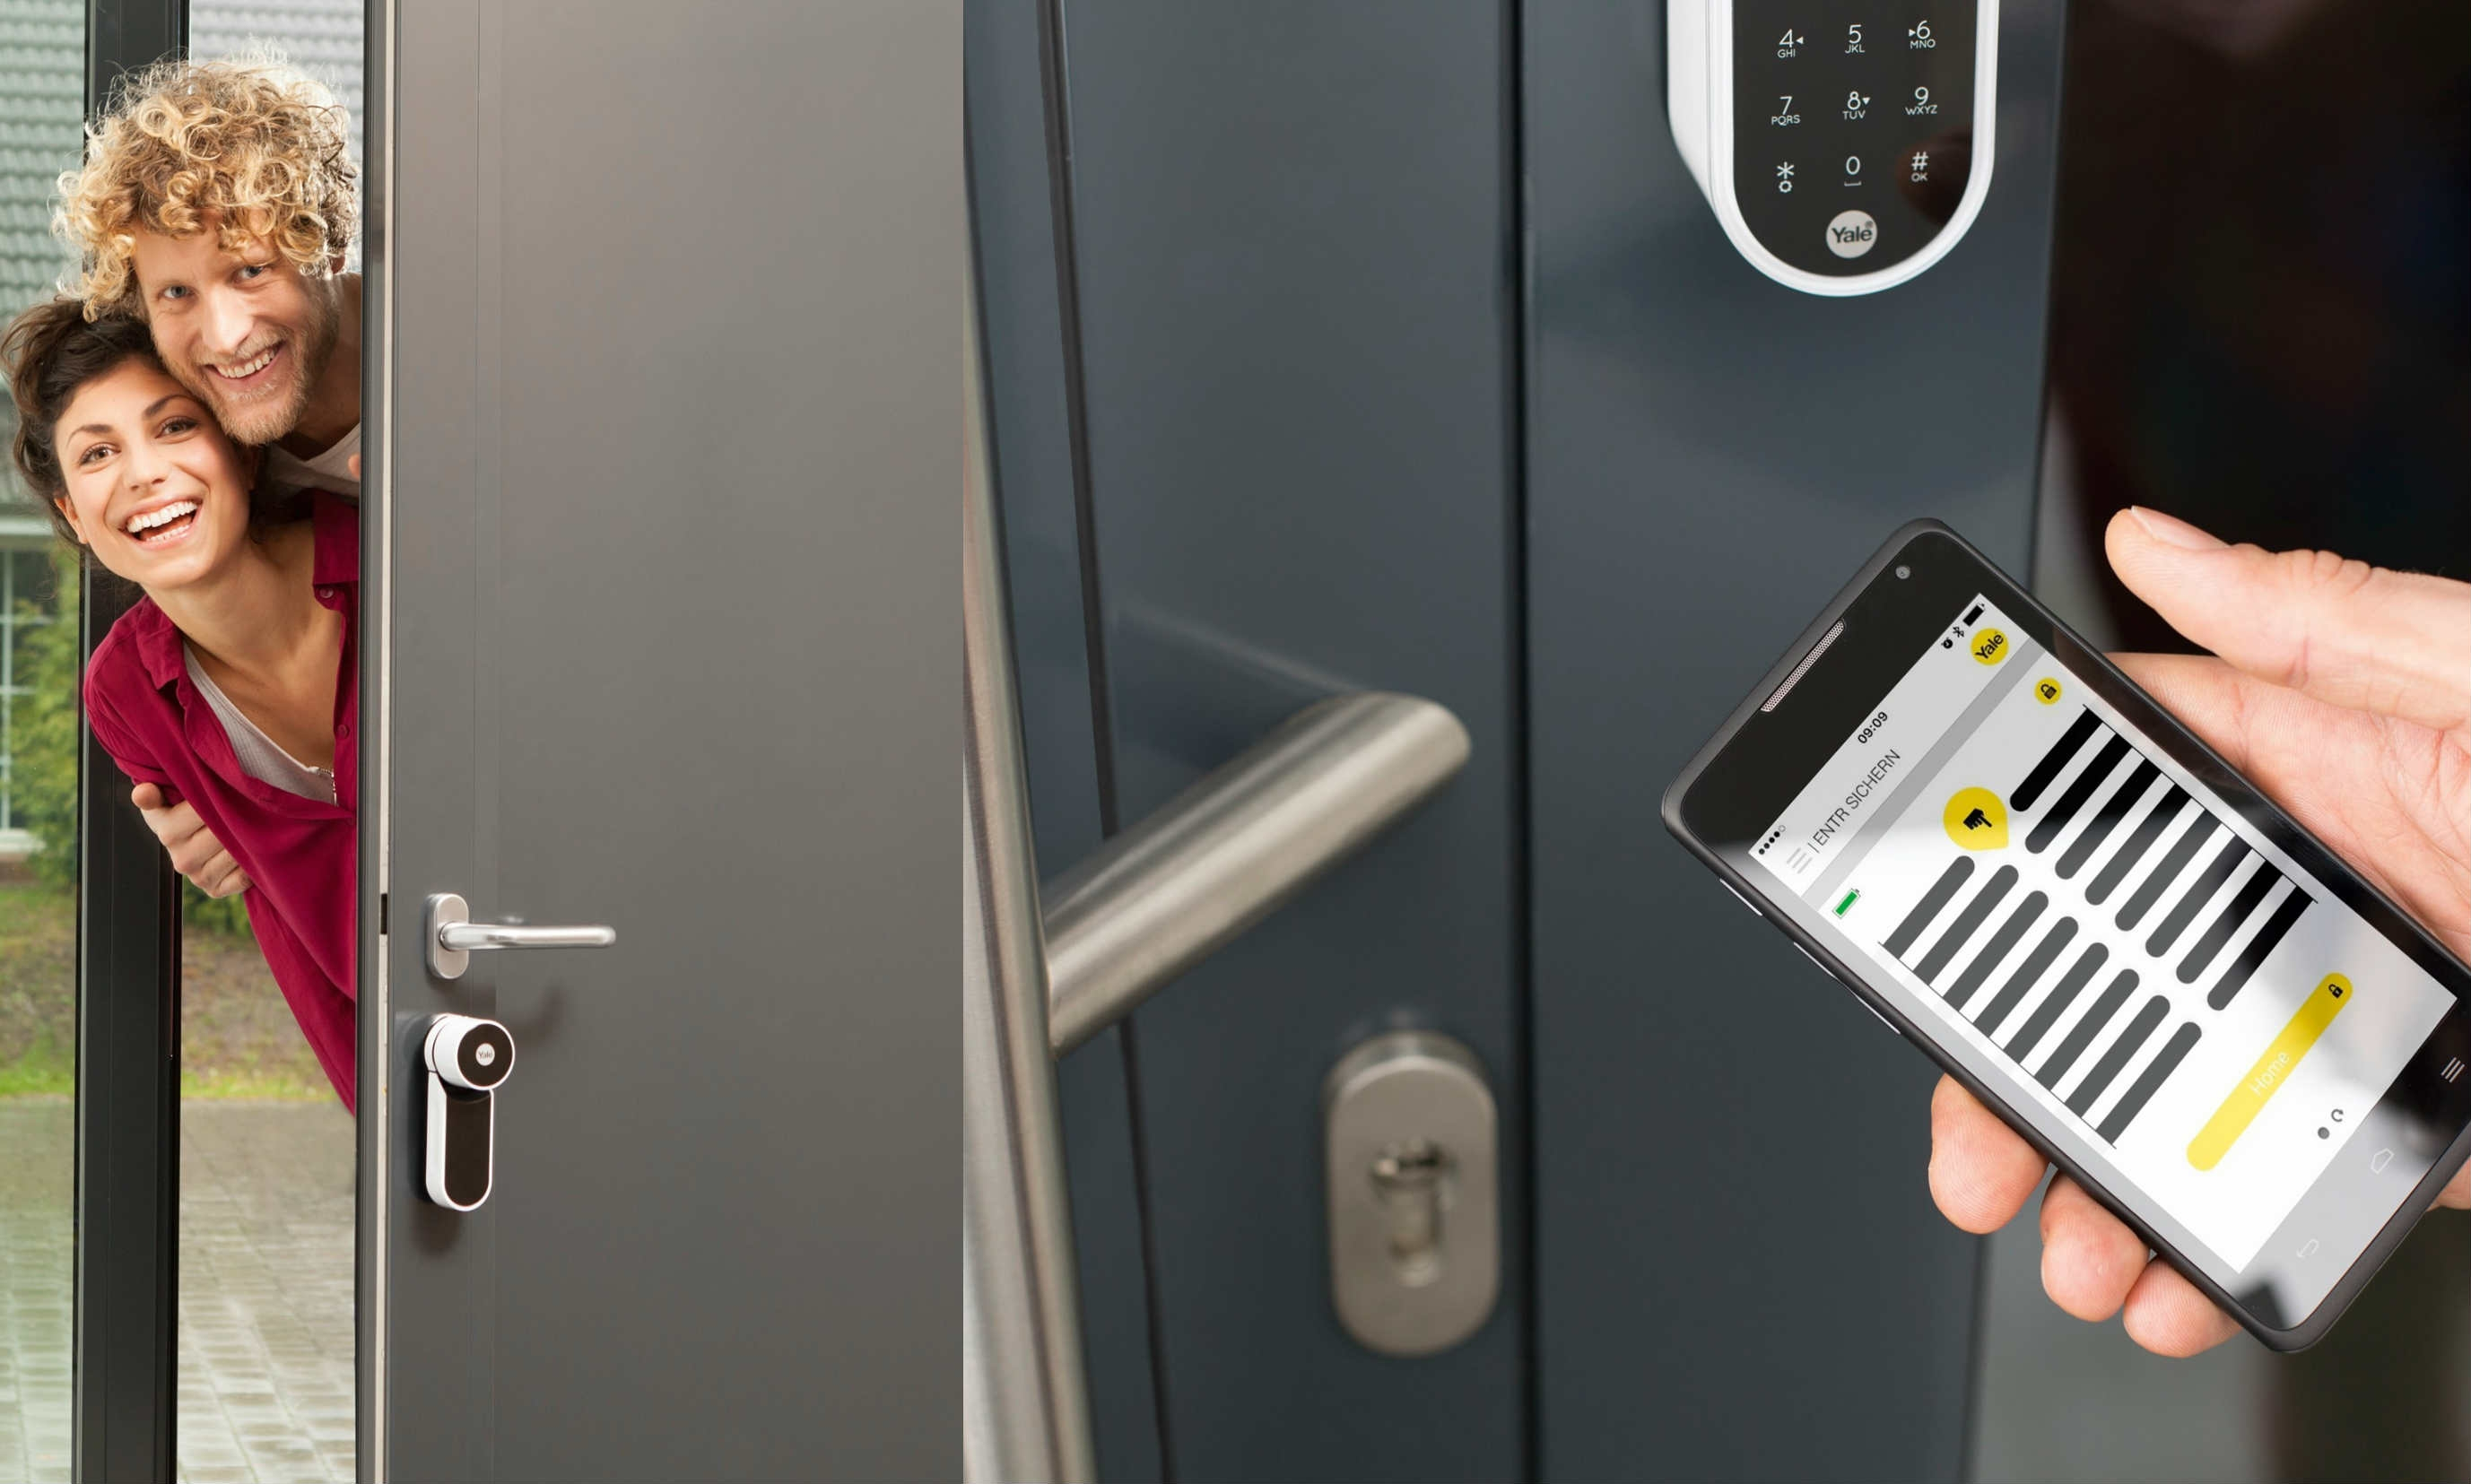 Smart locks will play a major part in the move to connected living